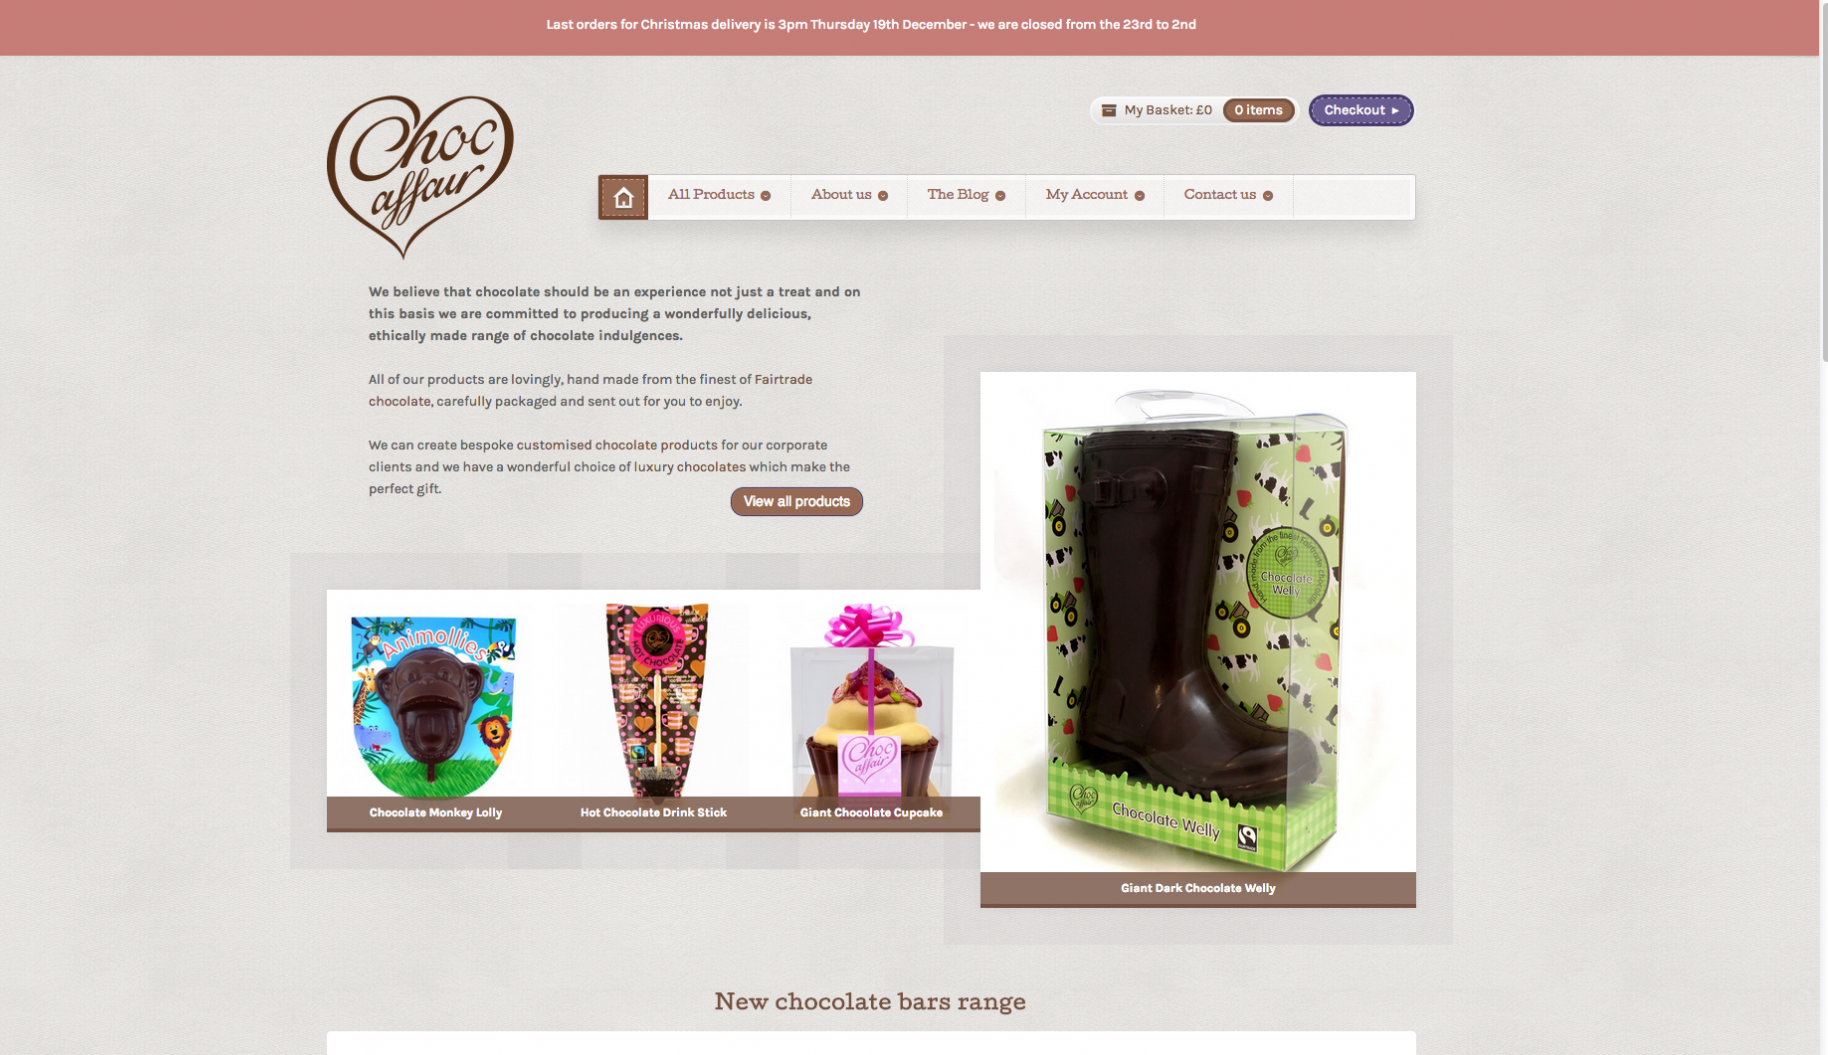 Screen Shot 2013 12 23 at 16.23.53 e1507566001698 - Website redesign for chocolate manufacturer